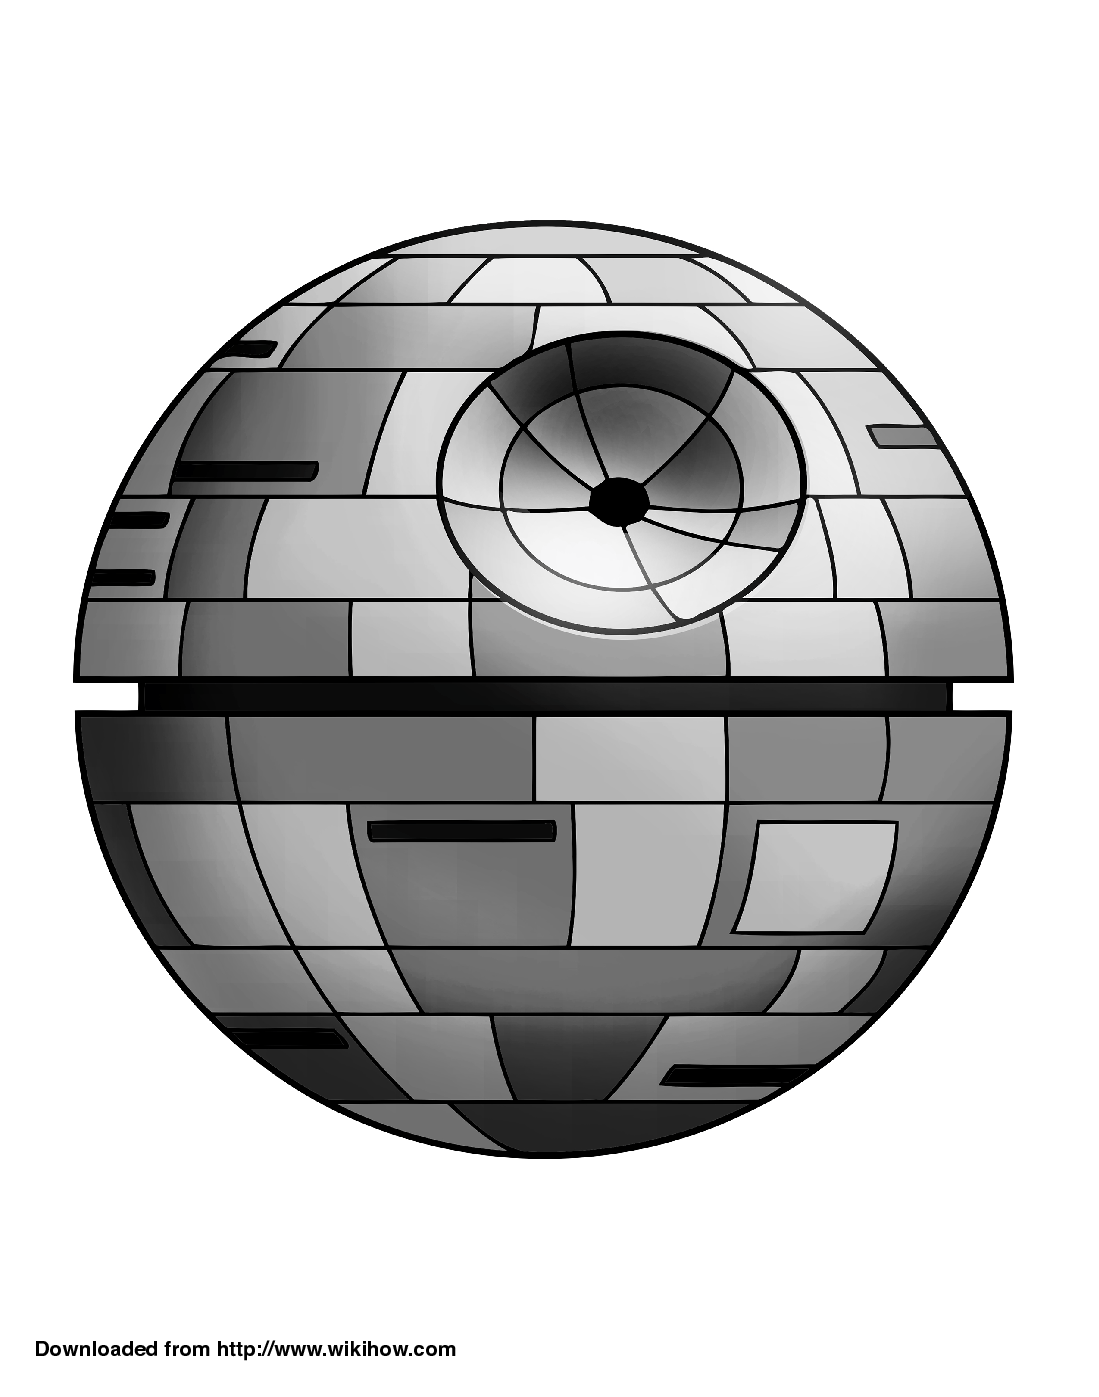 Printable Death Star Pumpkin Template - wikiHow | cake how to stuff ...